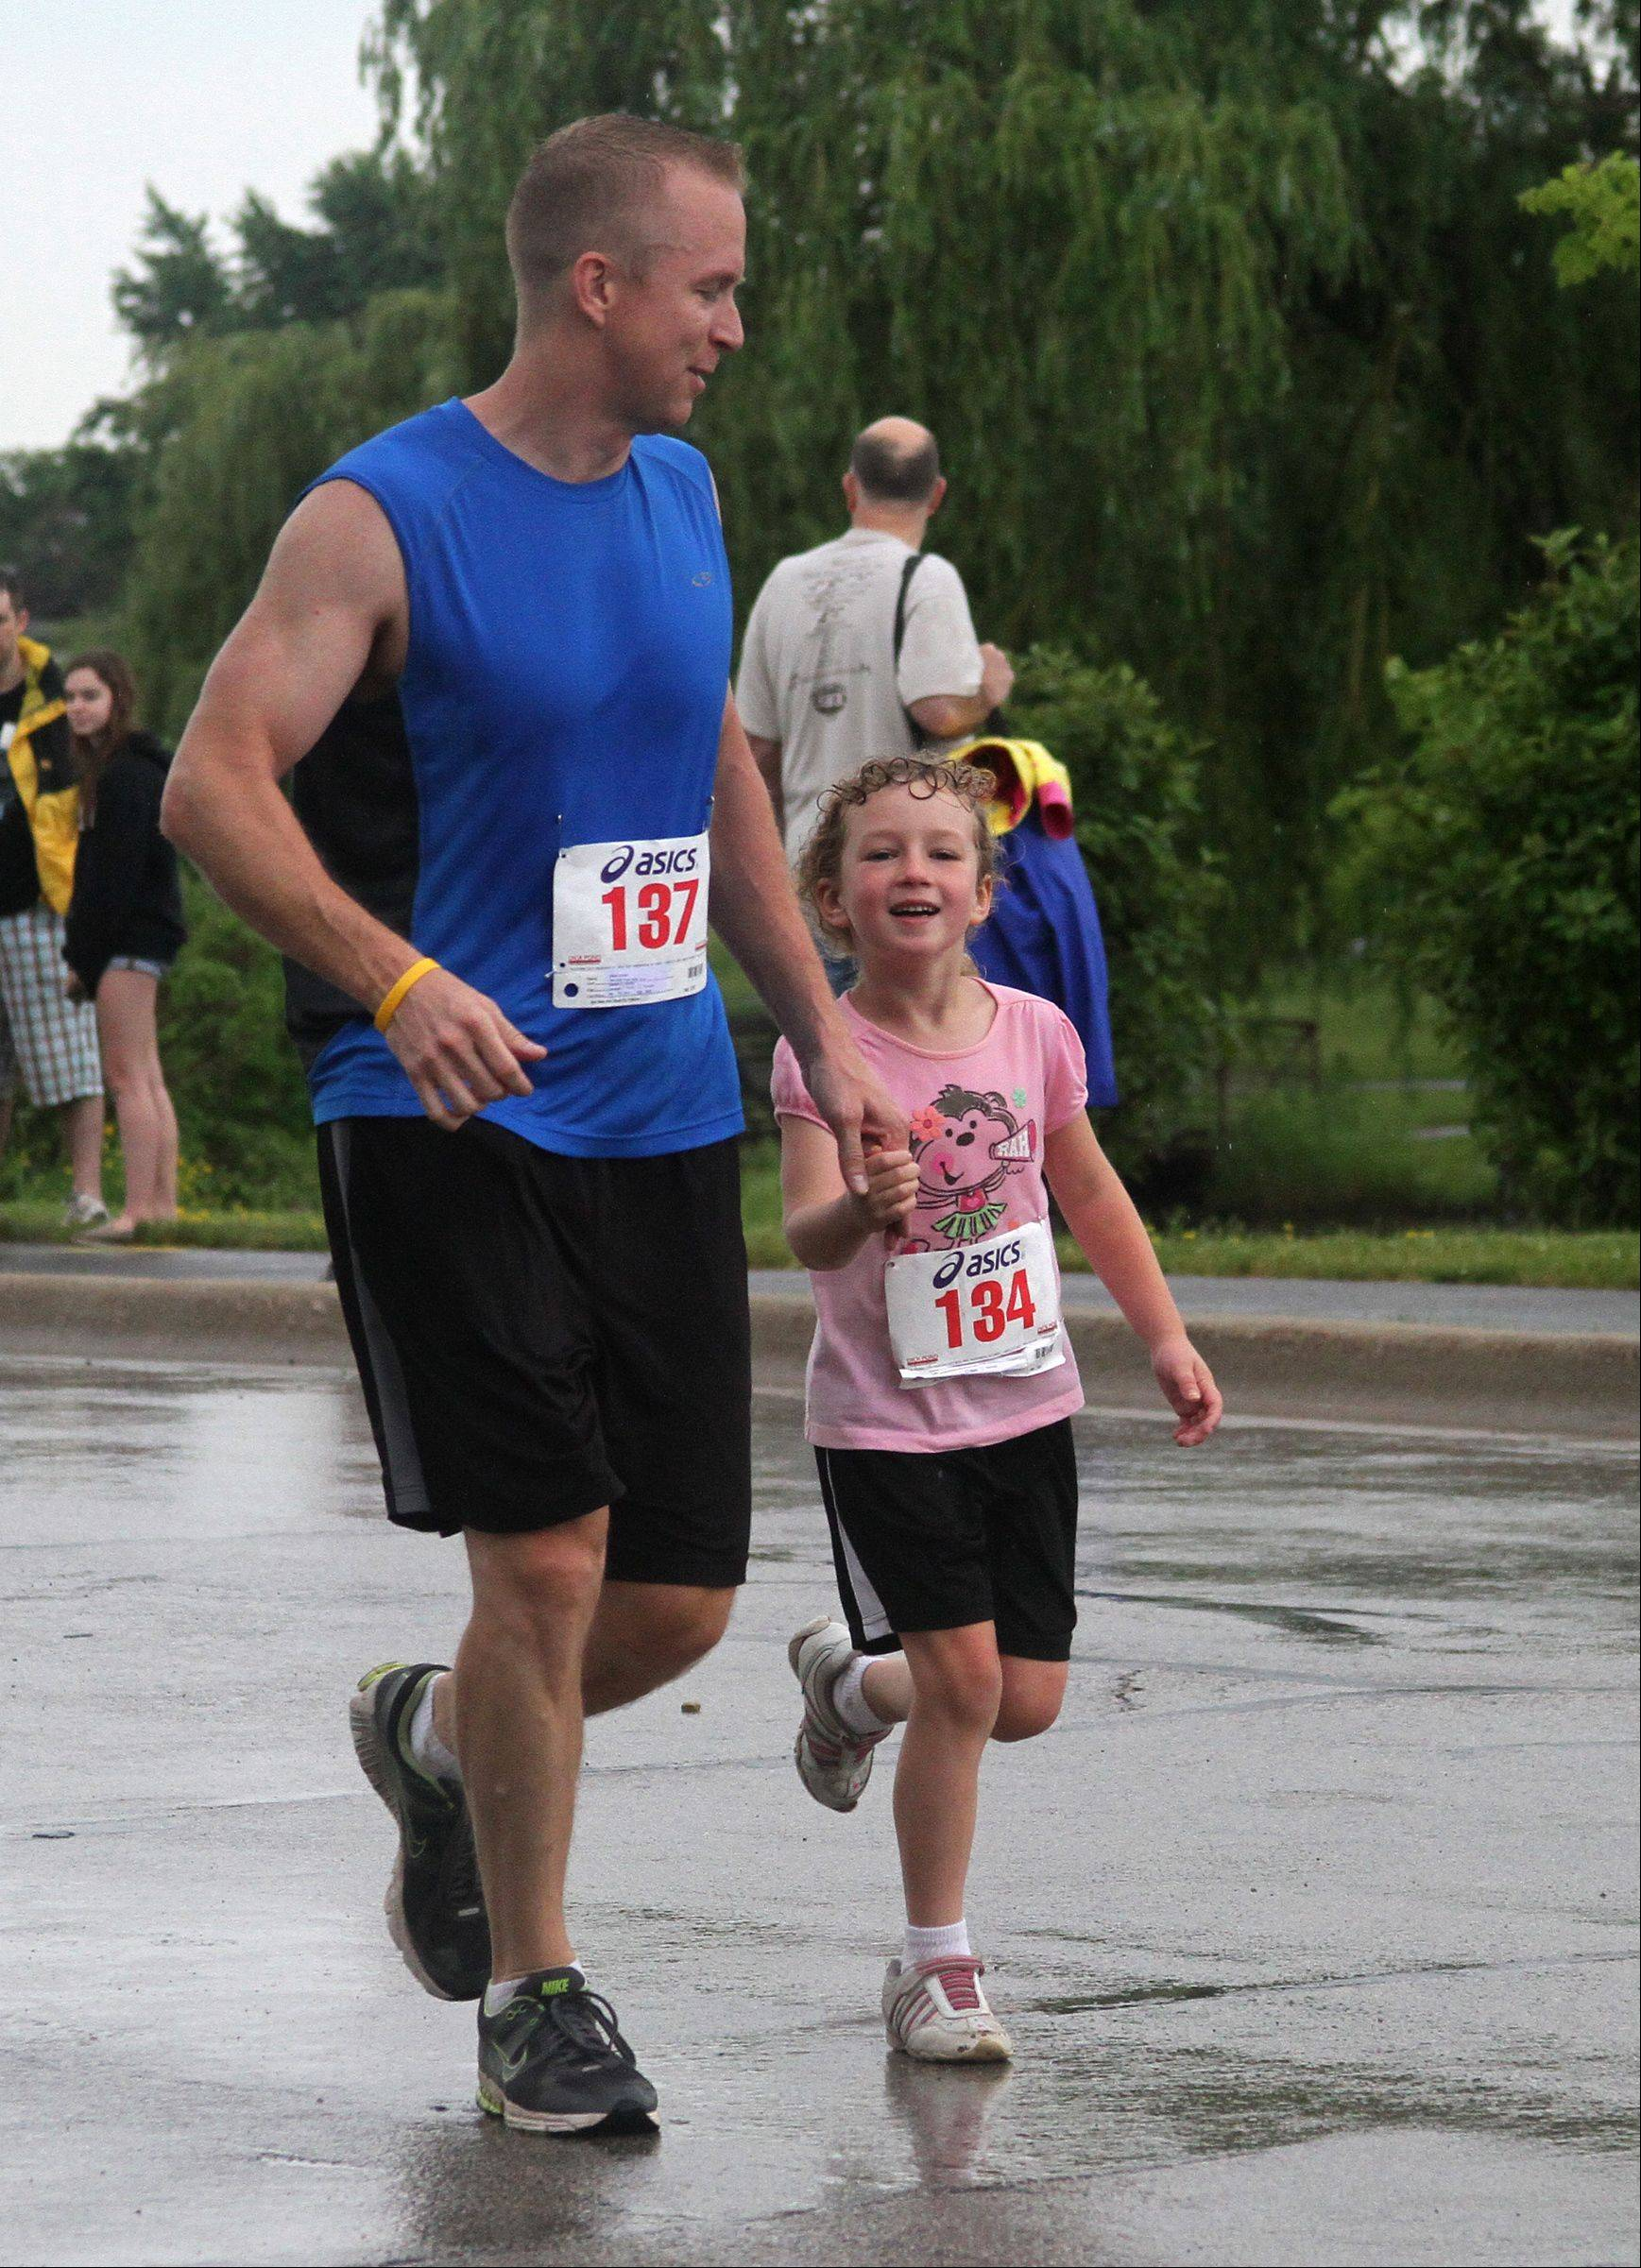 Steve and Chloe Curran of Bartlett run into the finish line at the 10th annual Bud's Run 5K at the Ross Ferraro Town Center in Carol Stream on Saturday. The father-daughter pair ran the 5K together, along with the rest of their family. It was Chloe's first 5K.